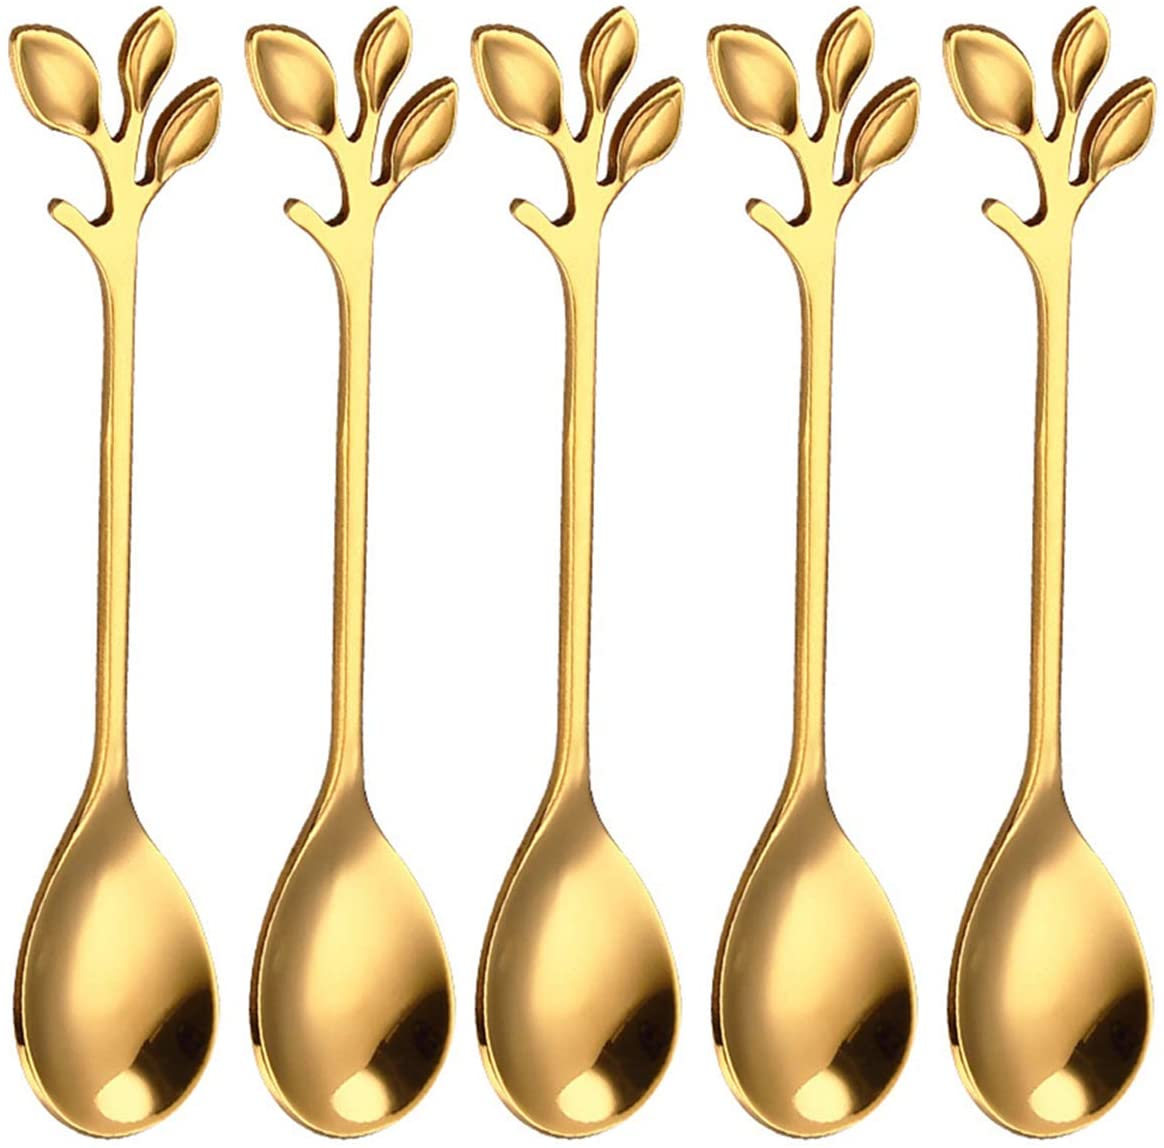 DERCLIVE Stainless steel spoons, leaf-shaped handle dessert coffee tea spoon kitchen accessories (5 pieces)